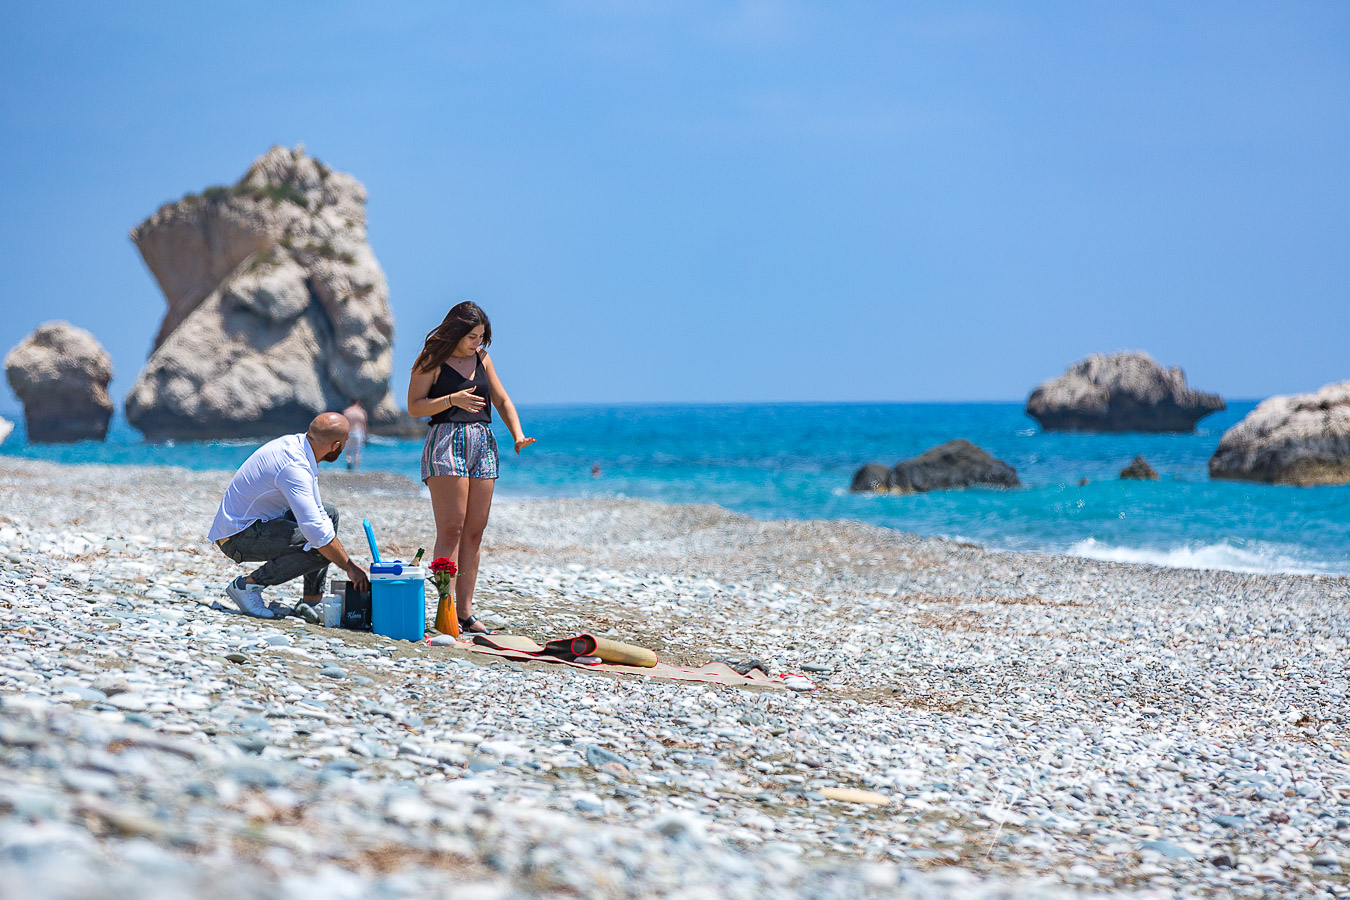 Happy moments capture at Aphrodite Rocks with Christian and Jana, by Cyprus Photographer Cristian Dascalu.